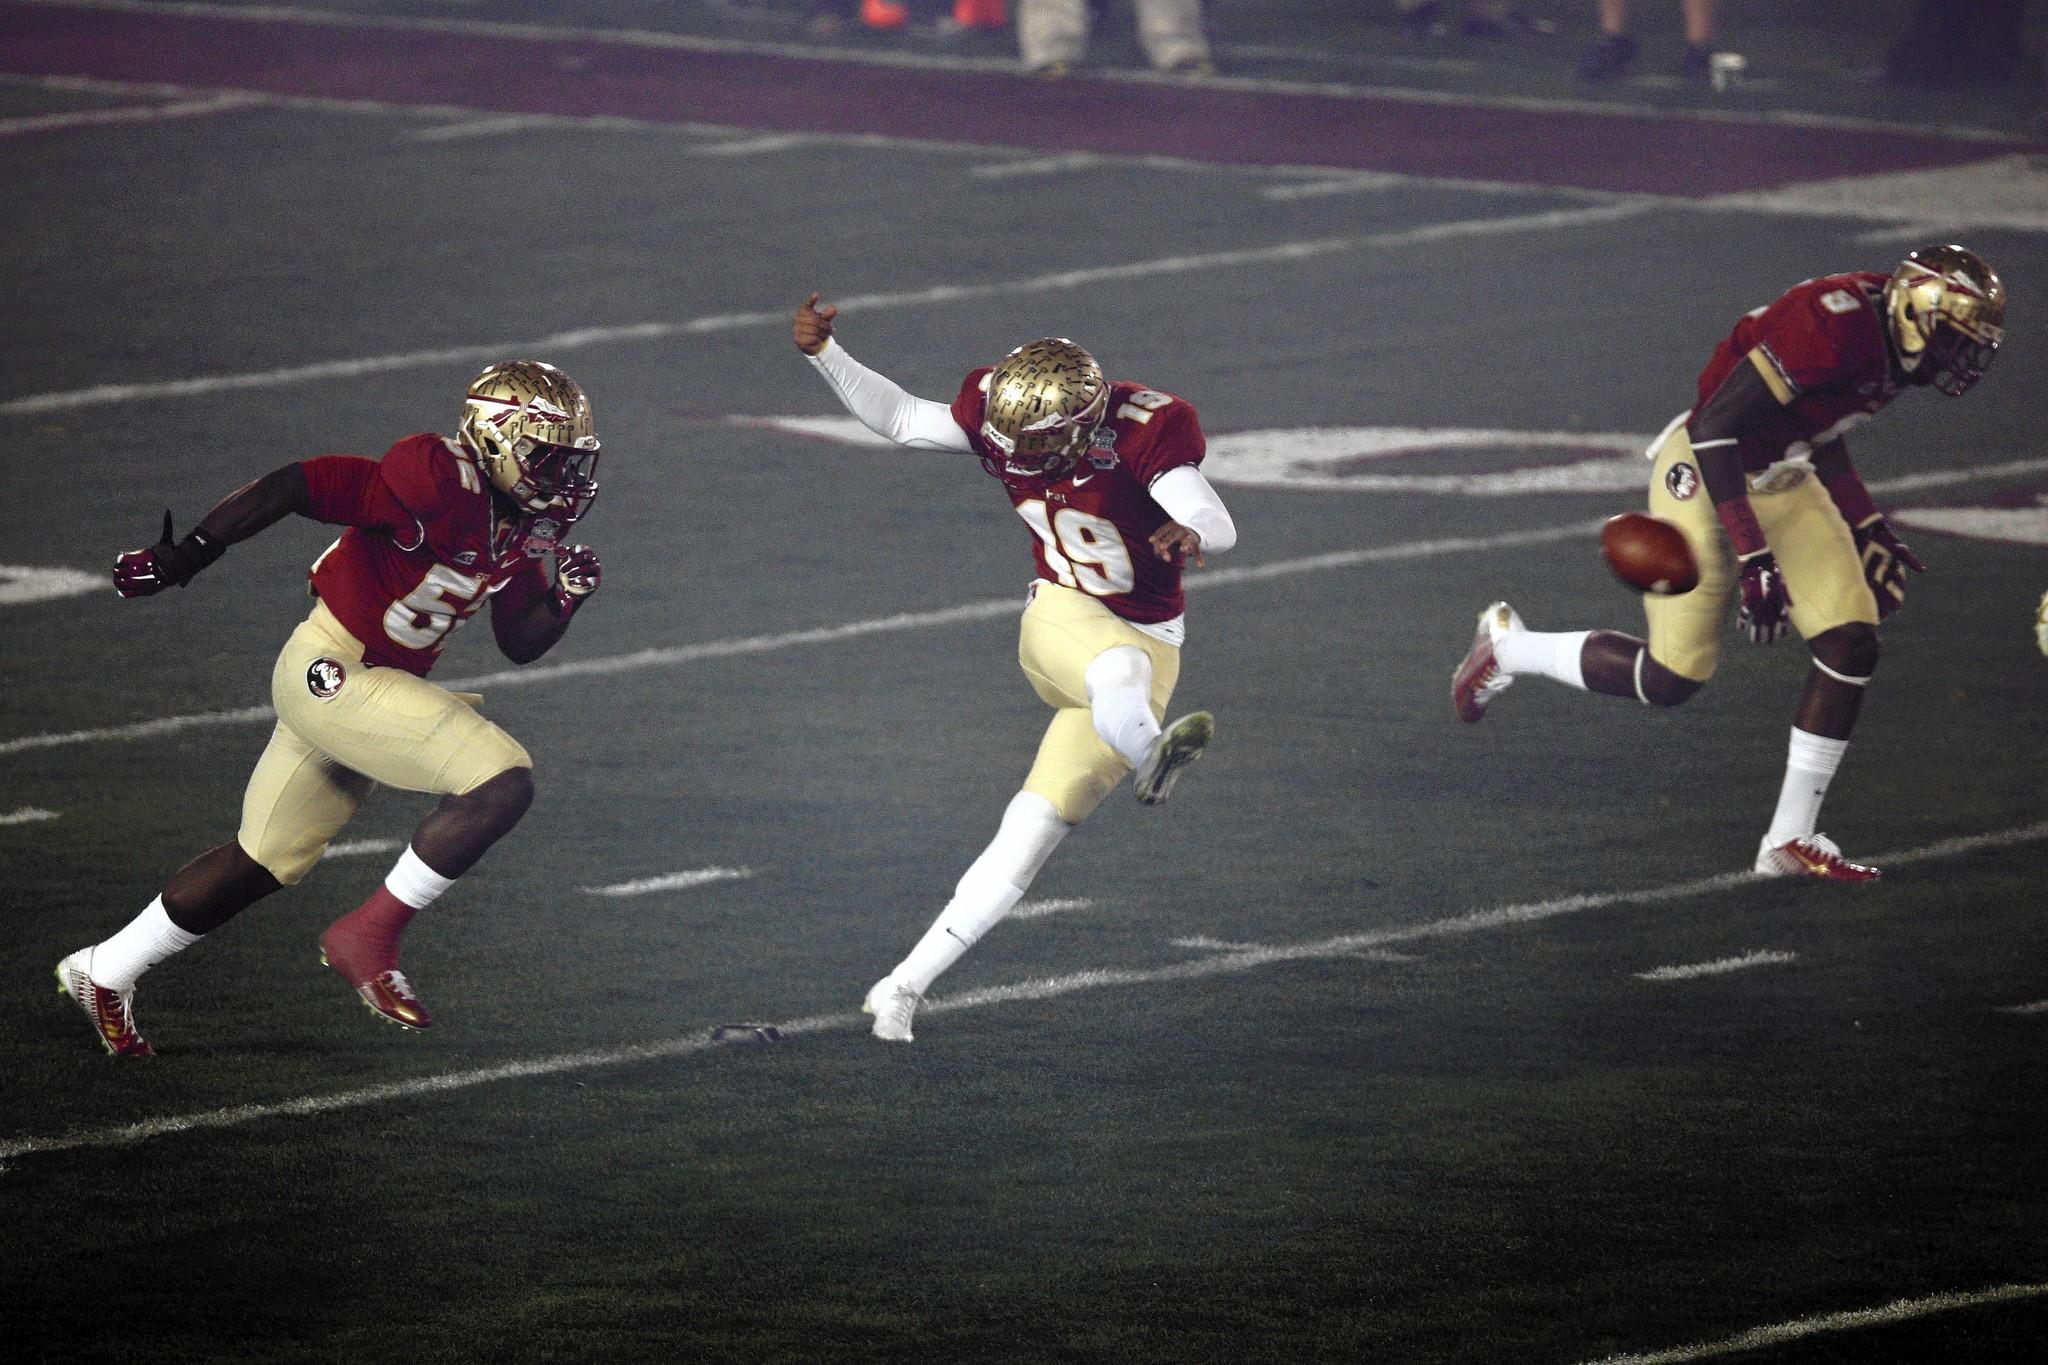 Florida State Seminoles kicker Roberto Aguayo (19) kicks the ball during the first half of the 2014 BCS National Championship game against the Auburn Tigers at the Rose Bowl.